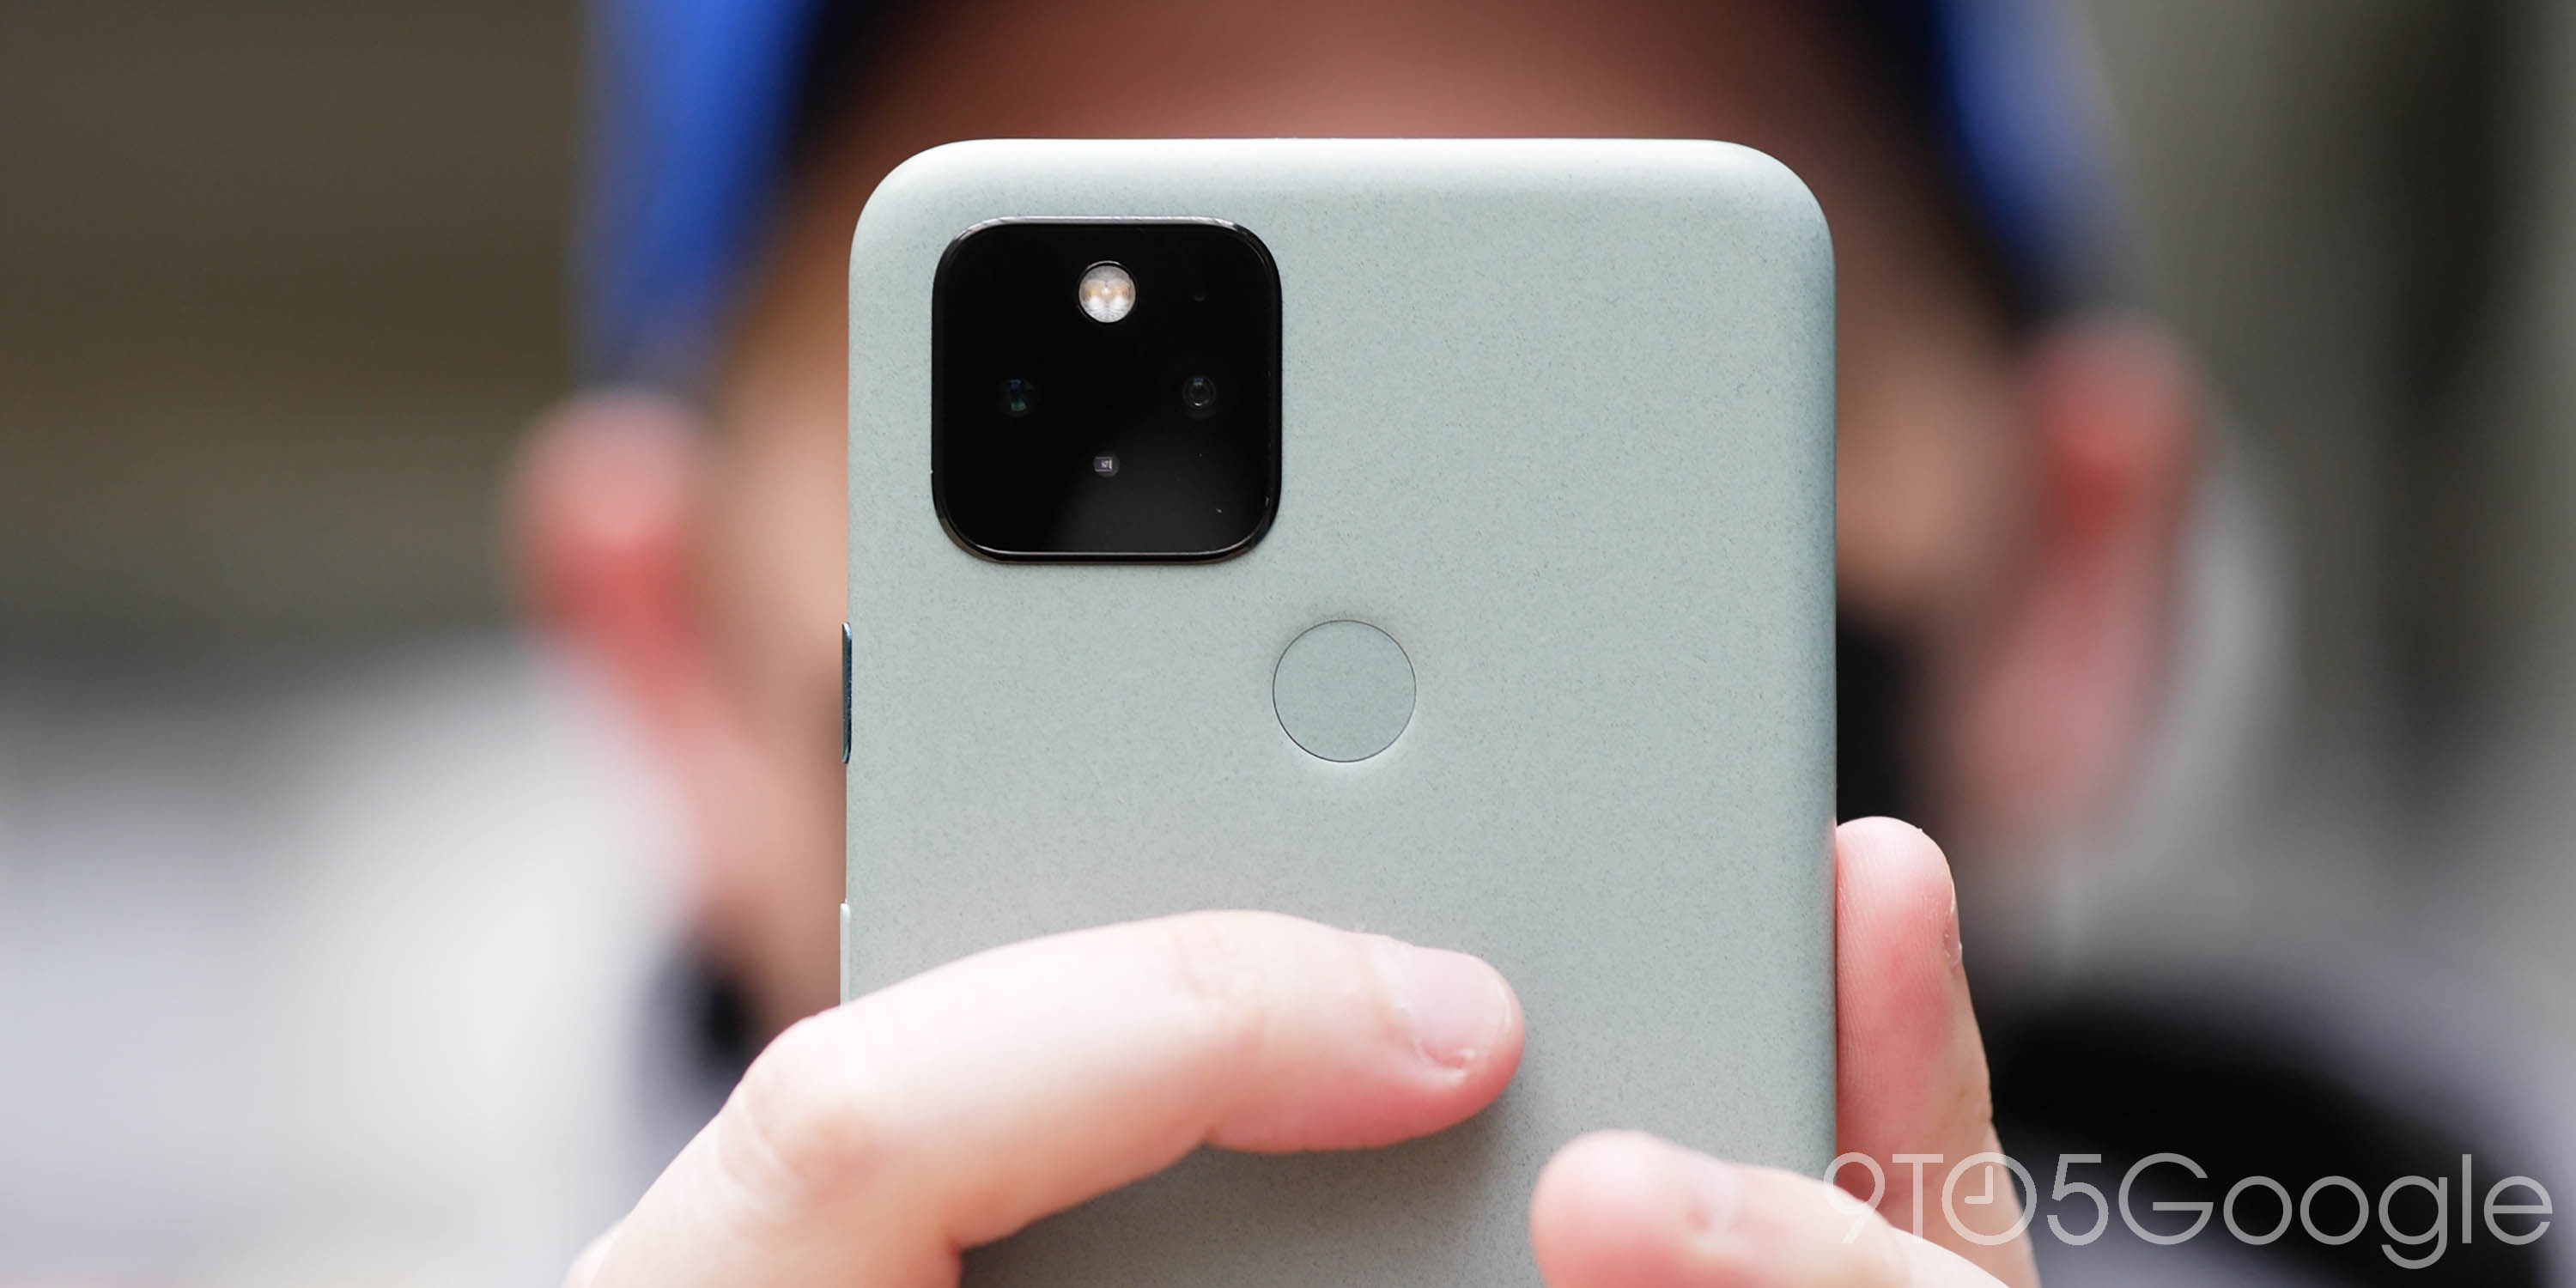 Googler publicly references Pixel 6's Whitechapel chip - 9to5Google